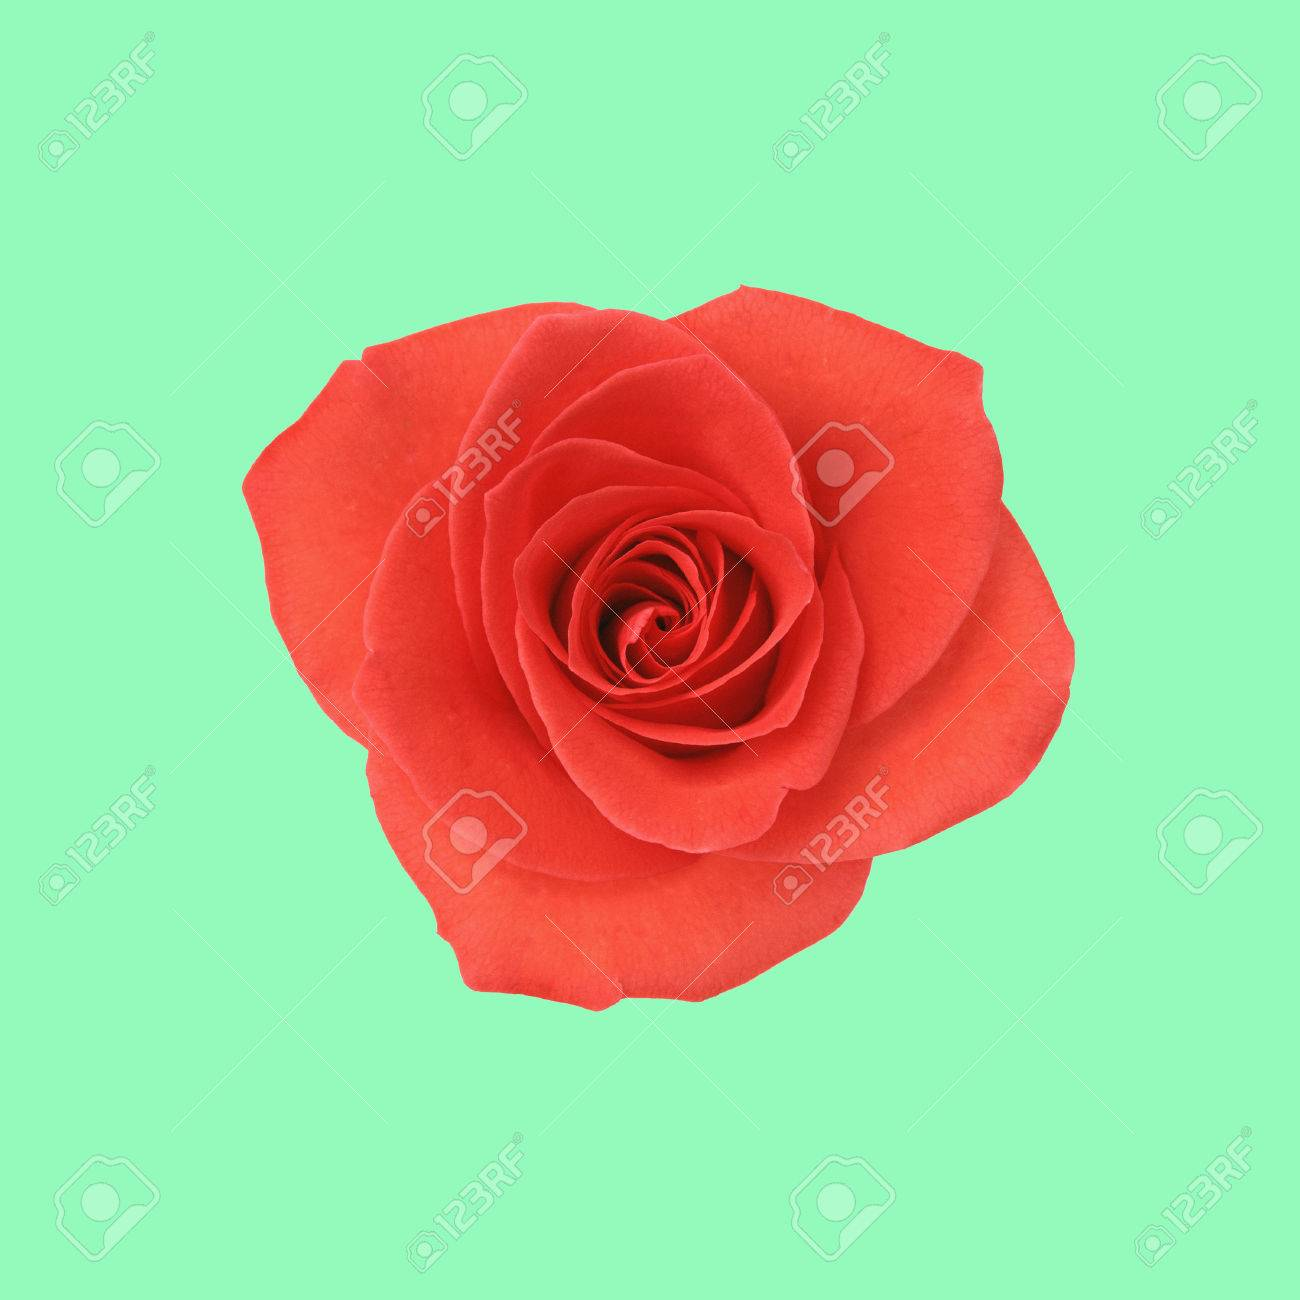 Flower Red Rose On The Mint Green Background Stock Photo, Picture ...